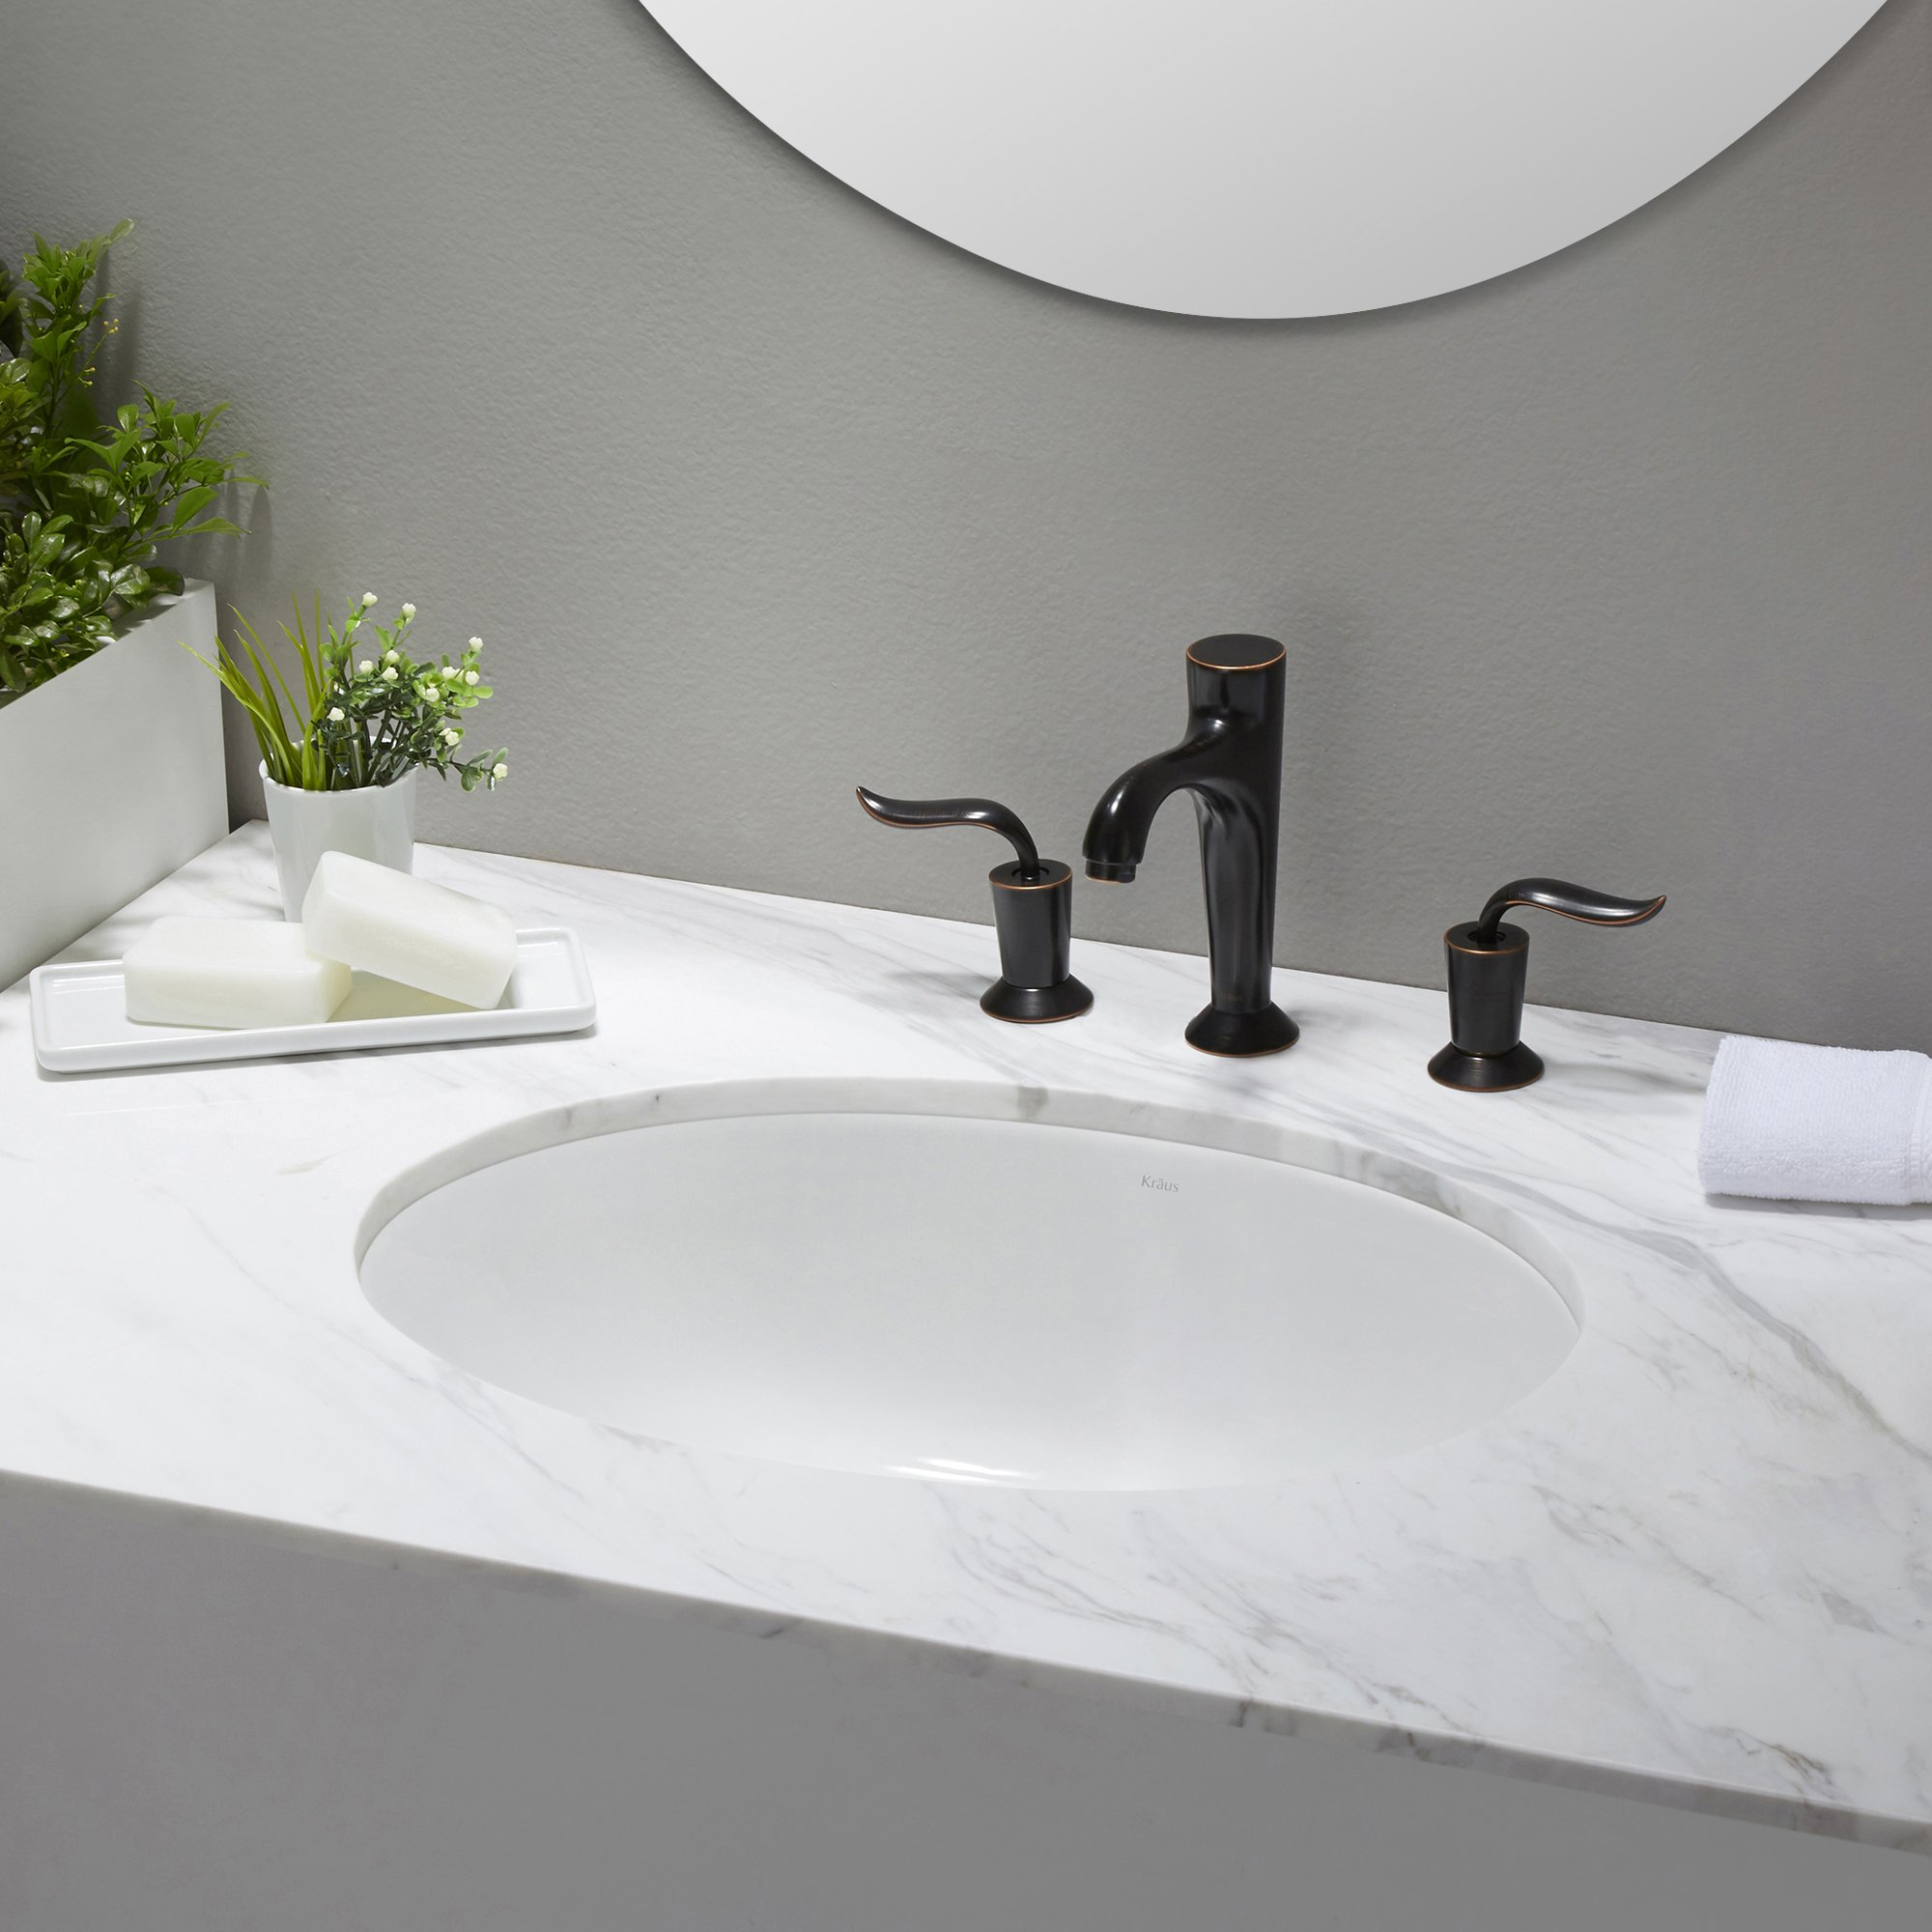 KRAUS Elavo 17 Inch Oval Undermount Porcelain Ceramic Bathroom Sink in White with Overflow, KCU-211 by Kraus (Image #14)